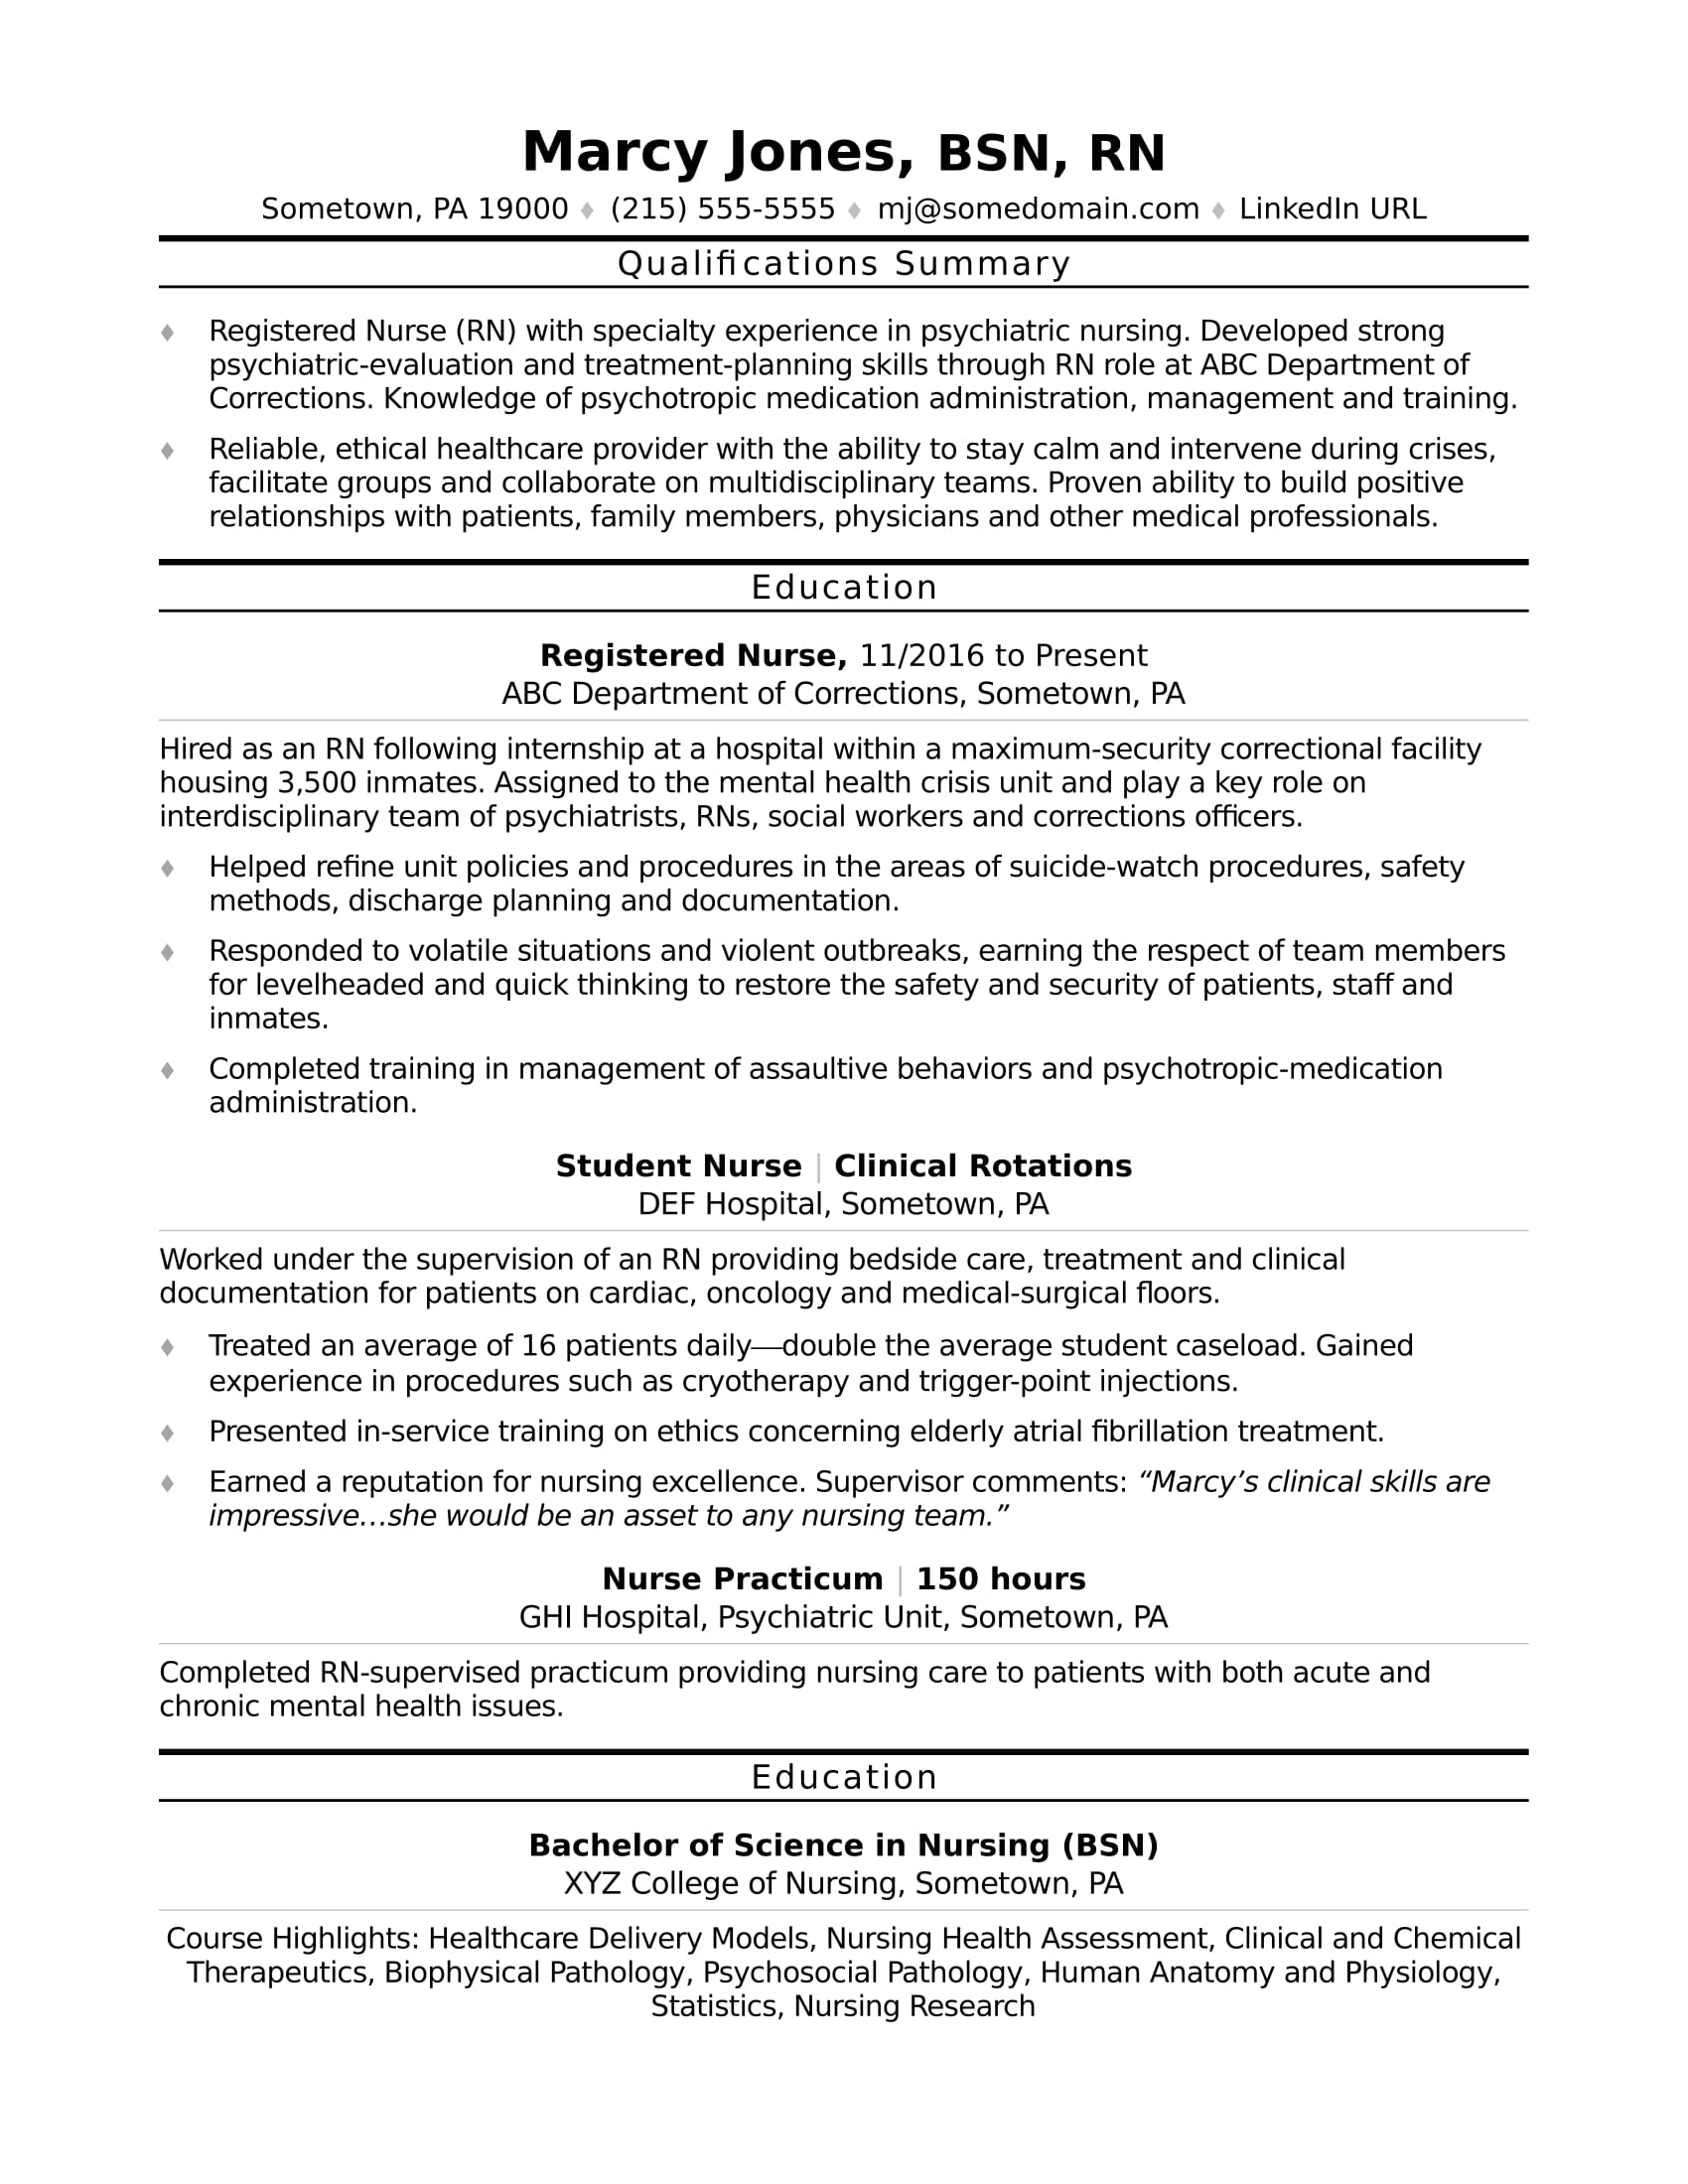 registered nurse rn resume sample monster for nurses with experience entry level first Resume Sample Resume For Nurses With Experience